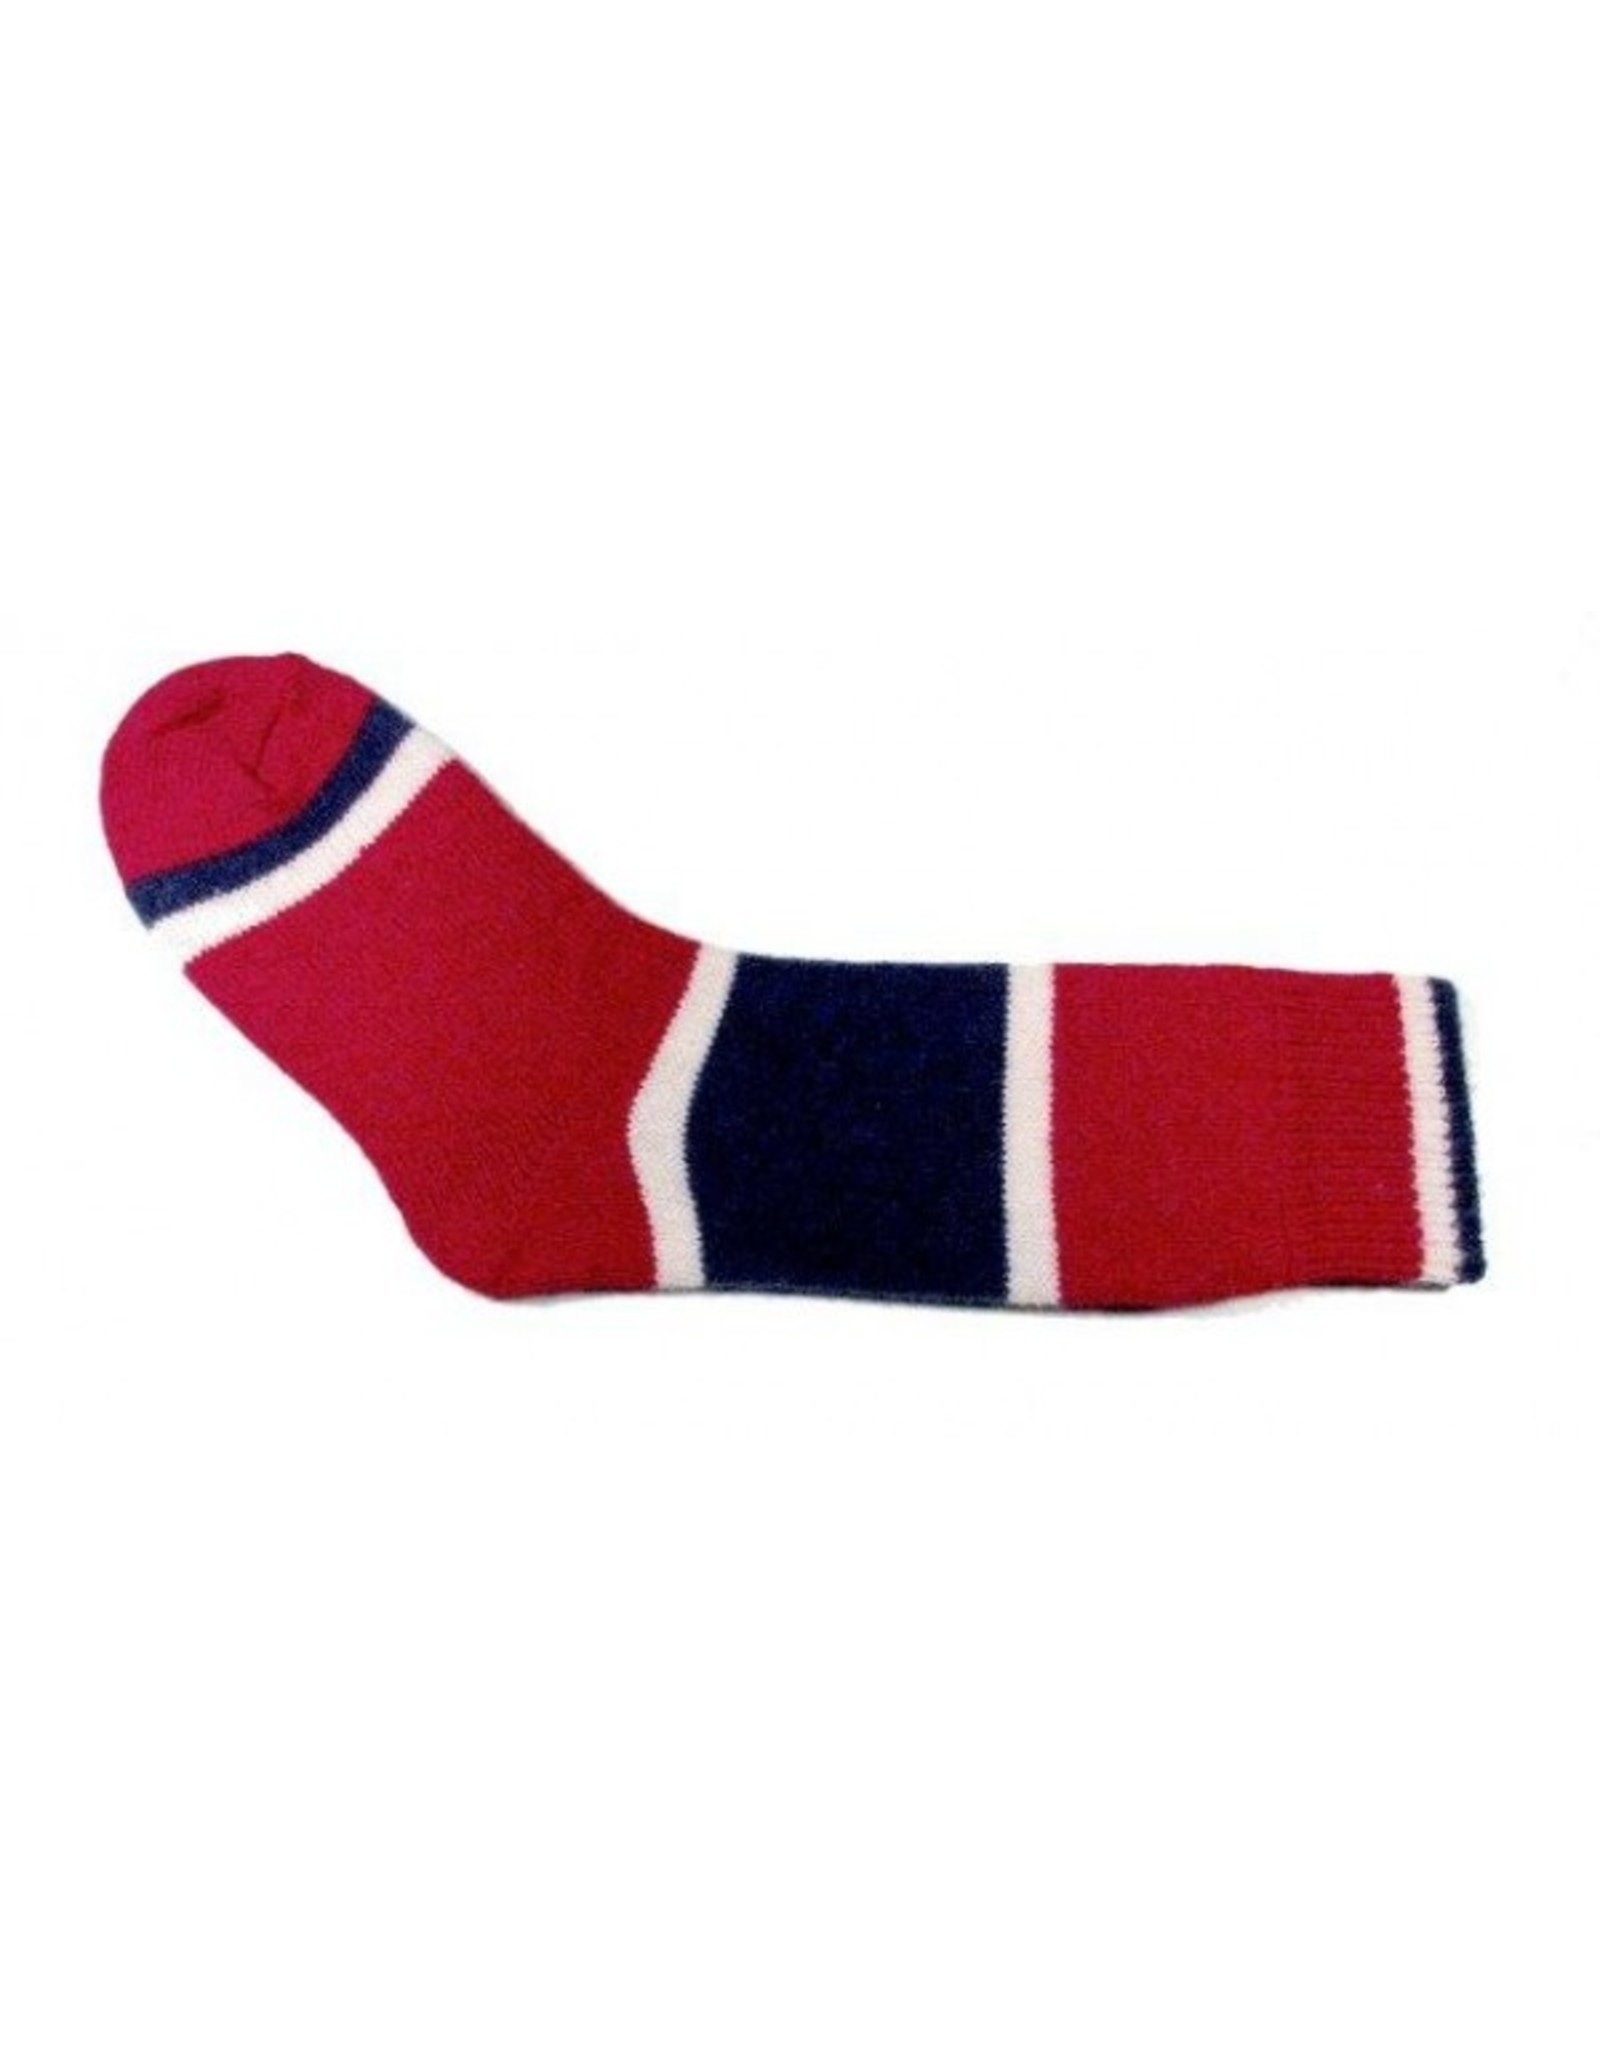 Bas de laine & mot coquin - Socks The Hockey (Red/Blue and White)